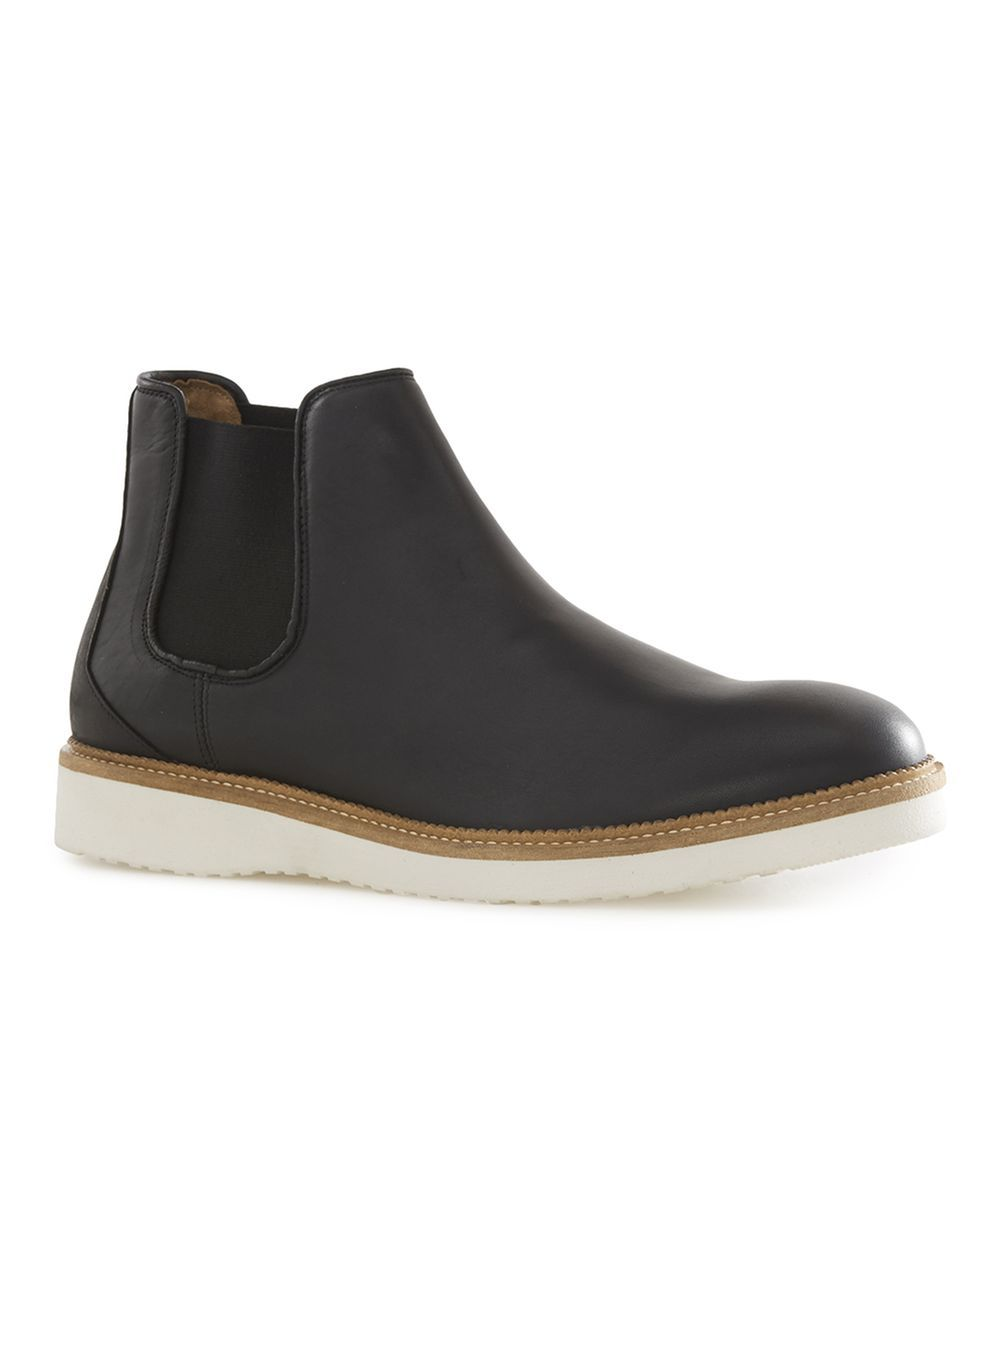 3b75eb8fcc62f1 SELECTED HOMME S Rud Black Leather Chelsea Boots - Boots - Shoes ...